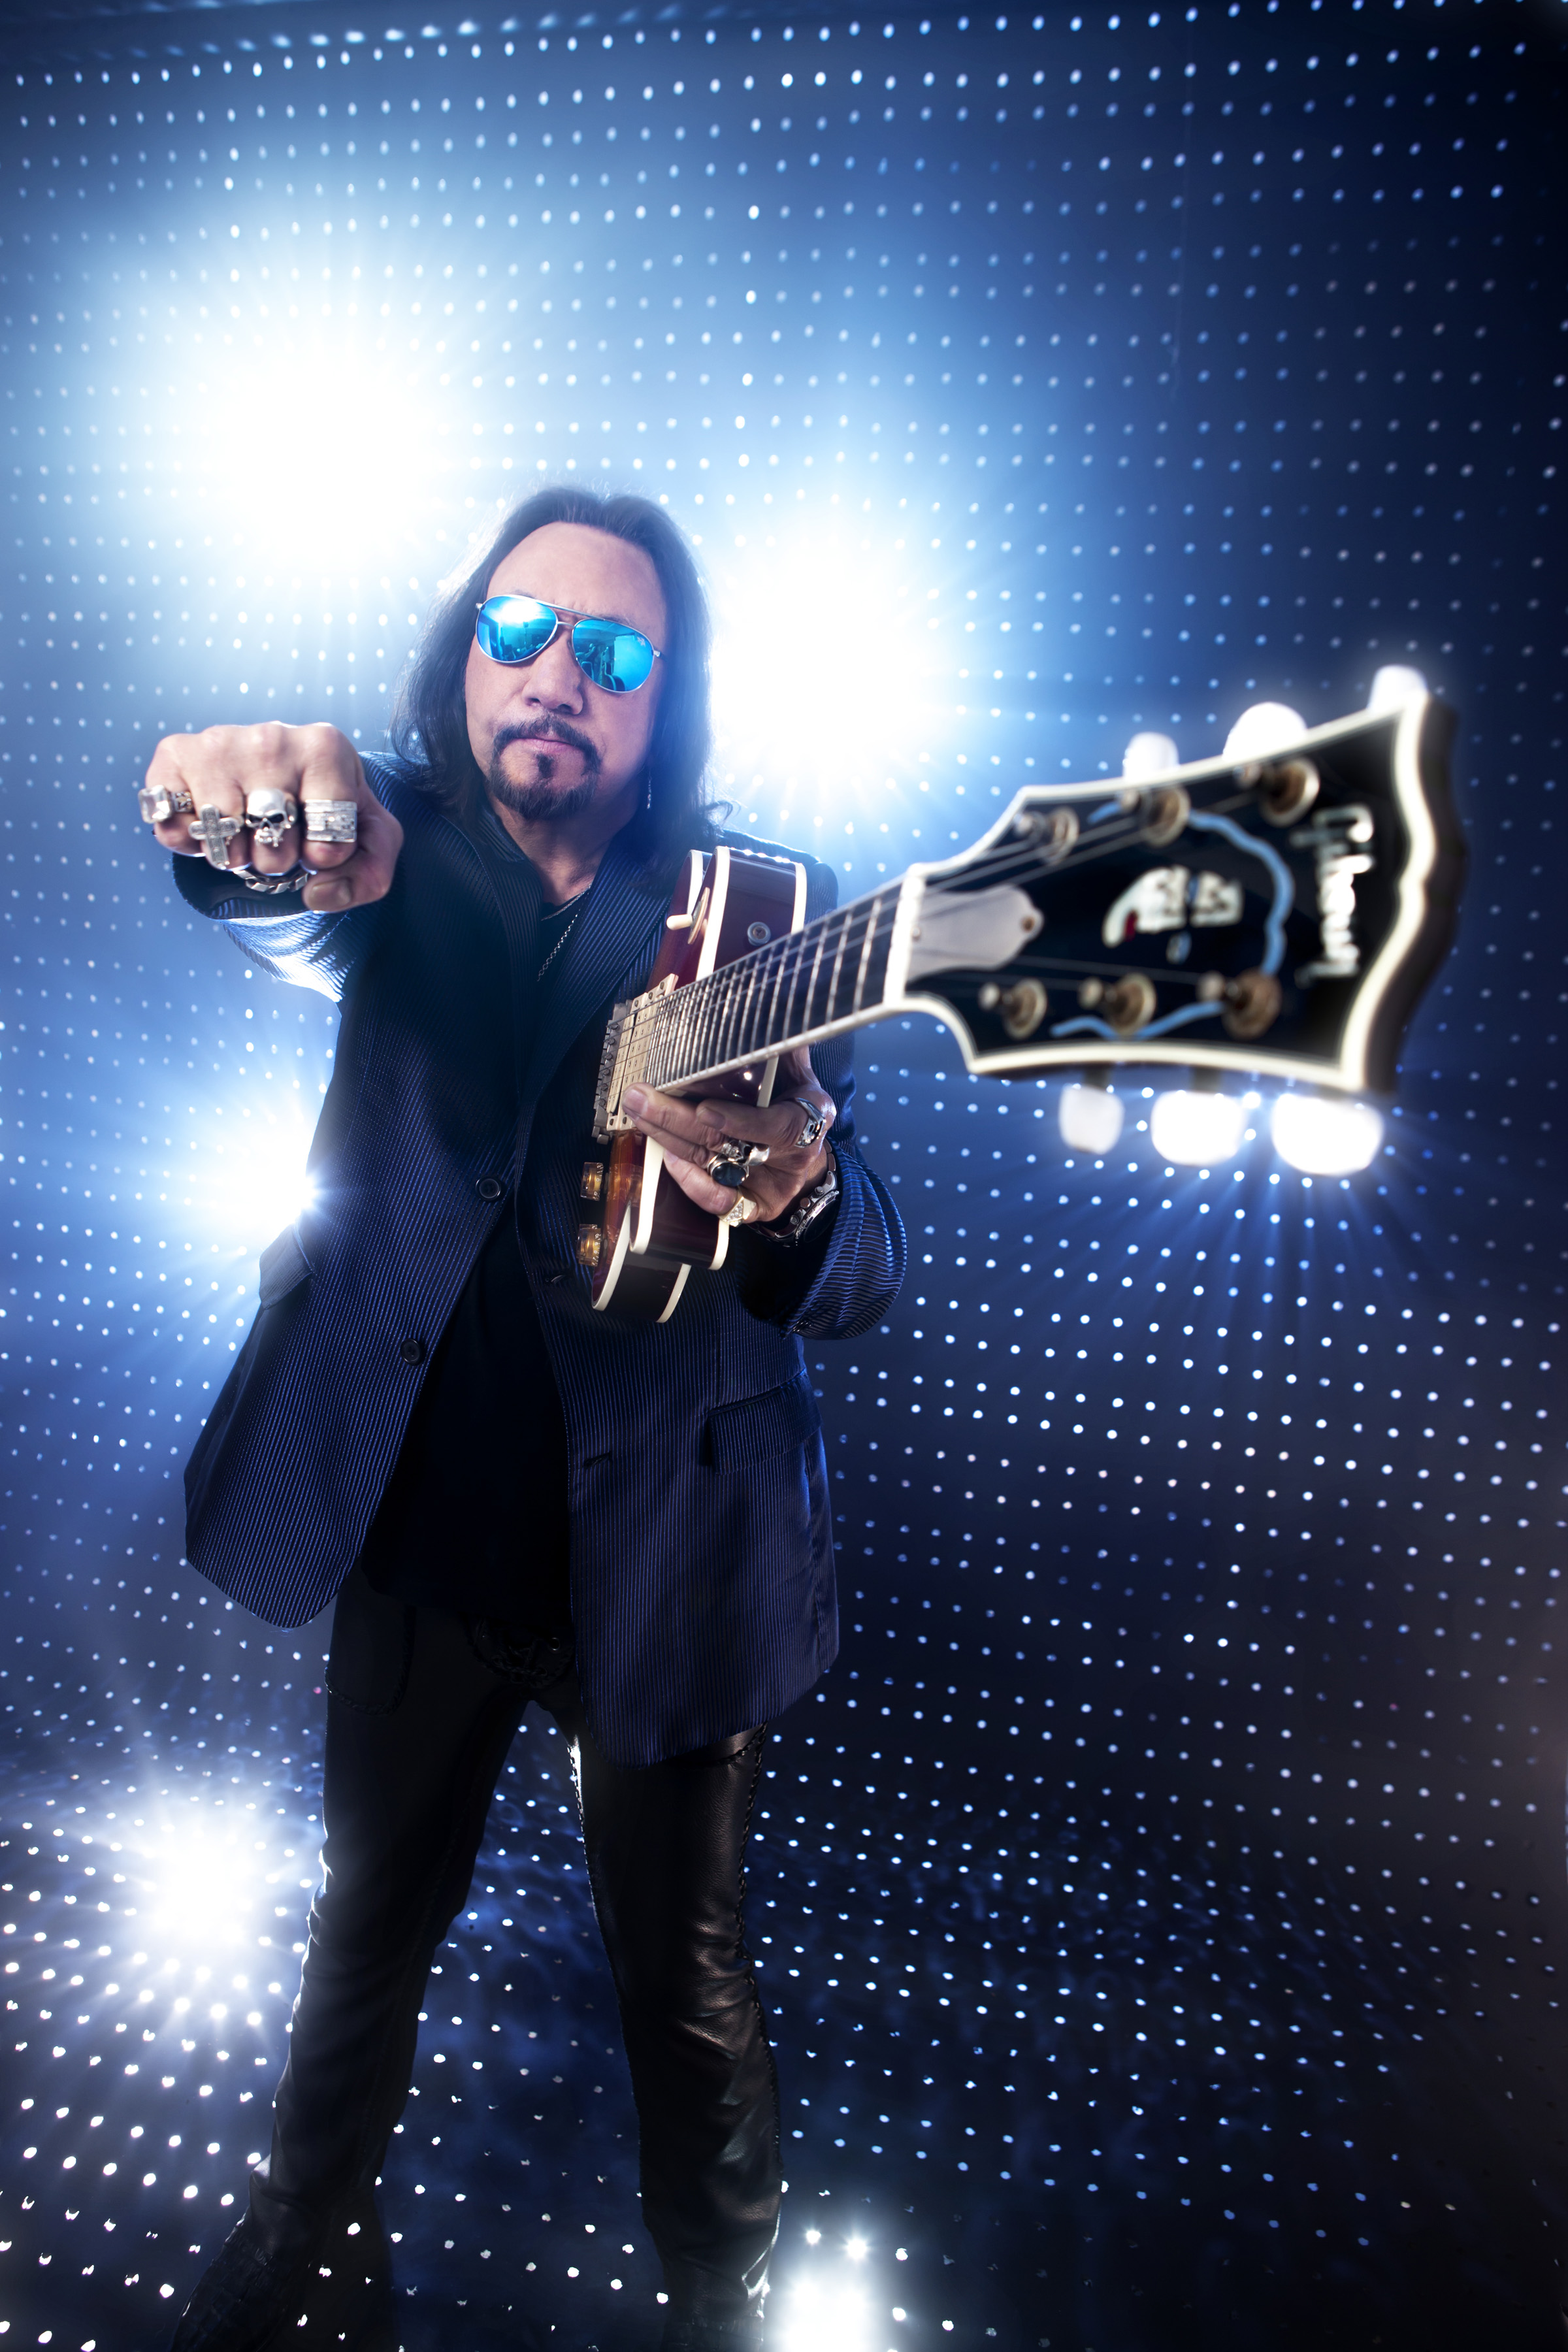 Ace Of Pentacles Images On Pinterest: Ace Frehley